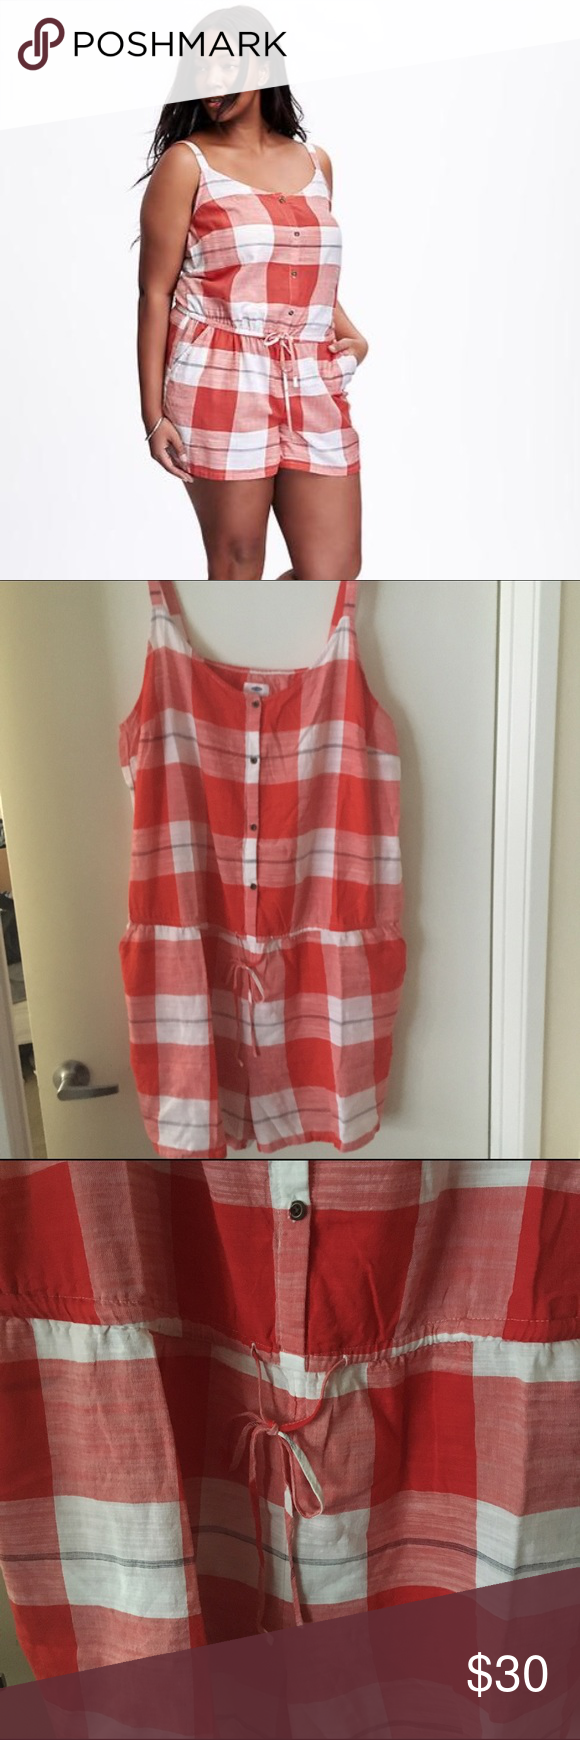 Checkered Romper Super cute thin strapped romper. It has elastic and a tie around the waist to highlight and cinch it. The romper also has pockets which is amazing and the romper has buttons that go all the way up. It's a thin light material perfect for summer. It's not see through. Also the romper has adjustable straps Old Navy Pants Jumpsuits & Rompers